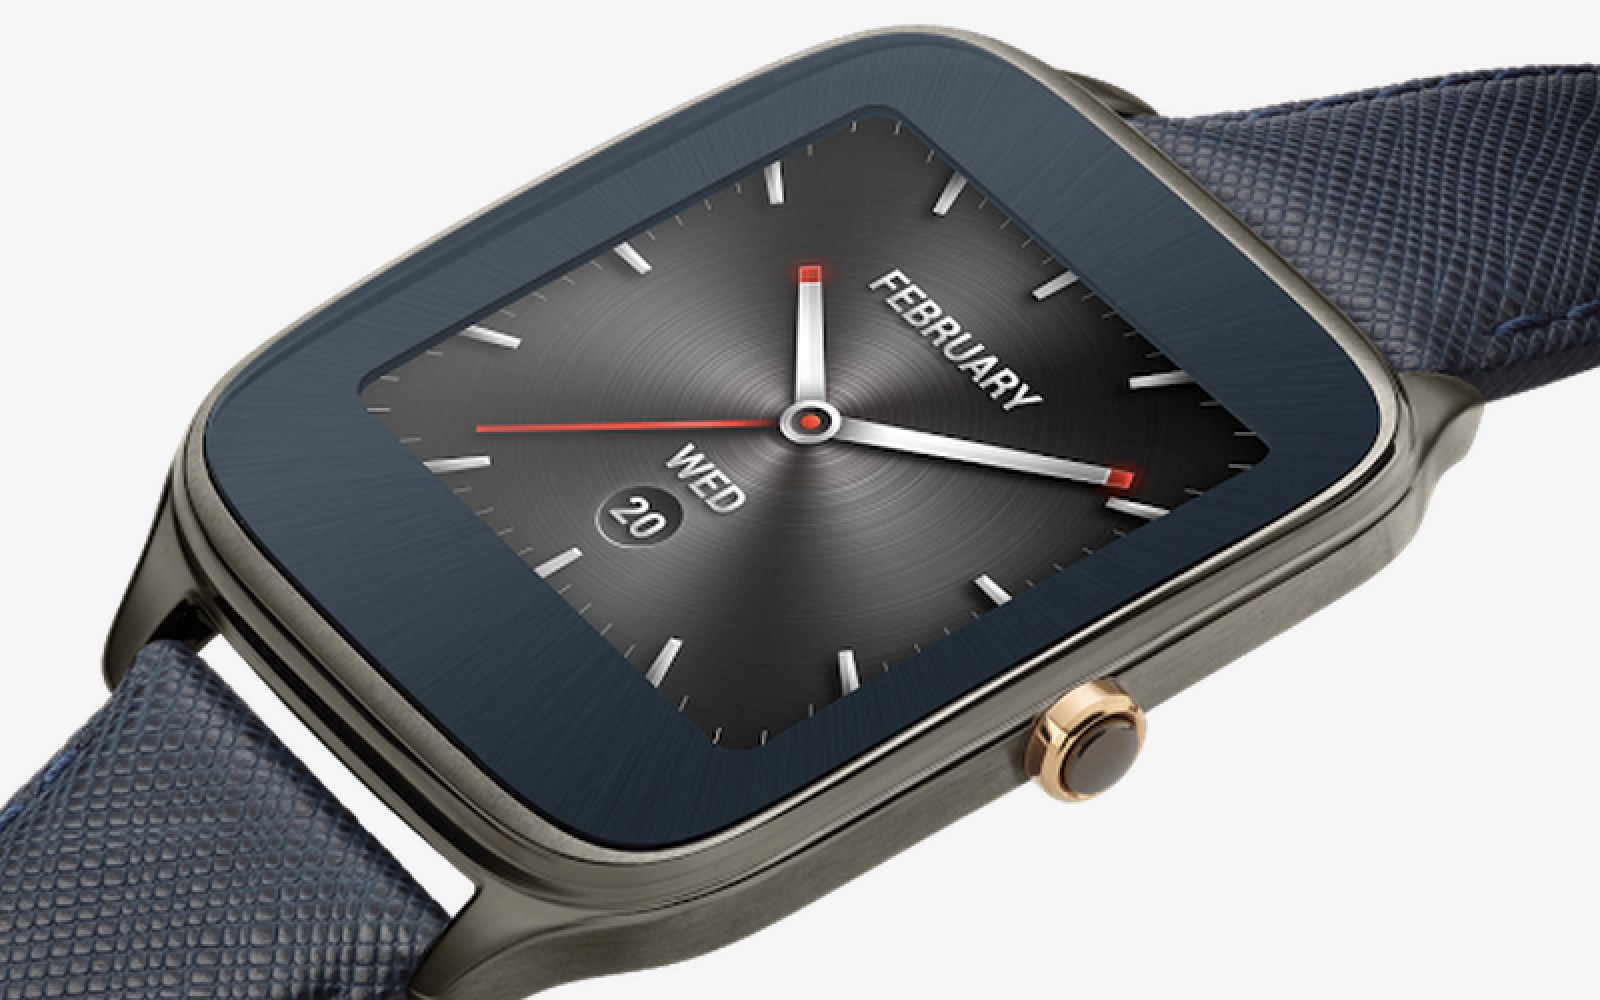 ASUS ZenWatch 2 now available from Google Store